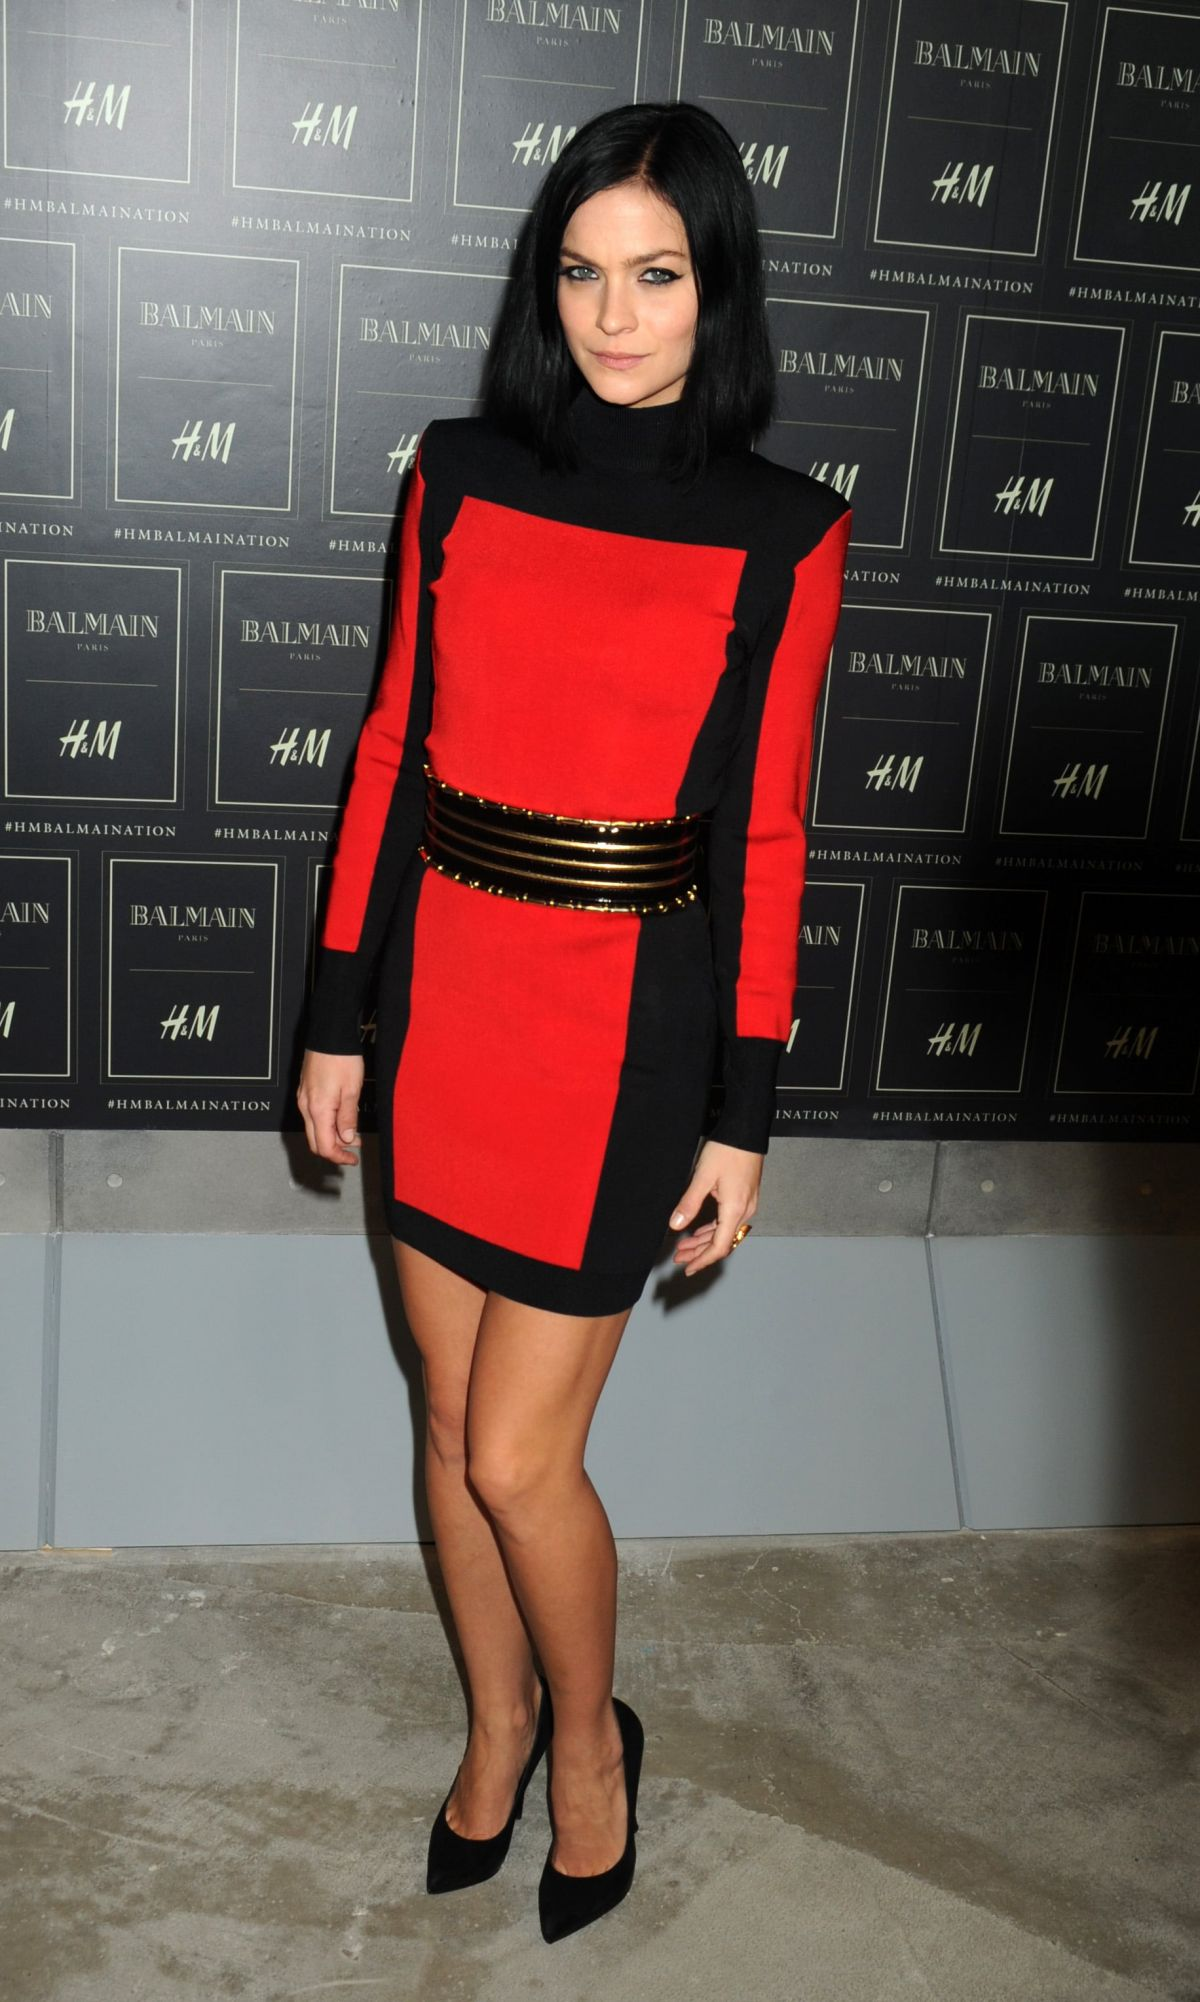 LEIGH LEZARK at Balmain X H&M Collection Launch in New York 10/20/2015